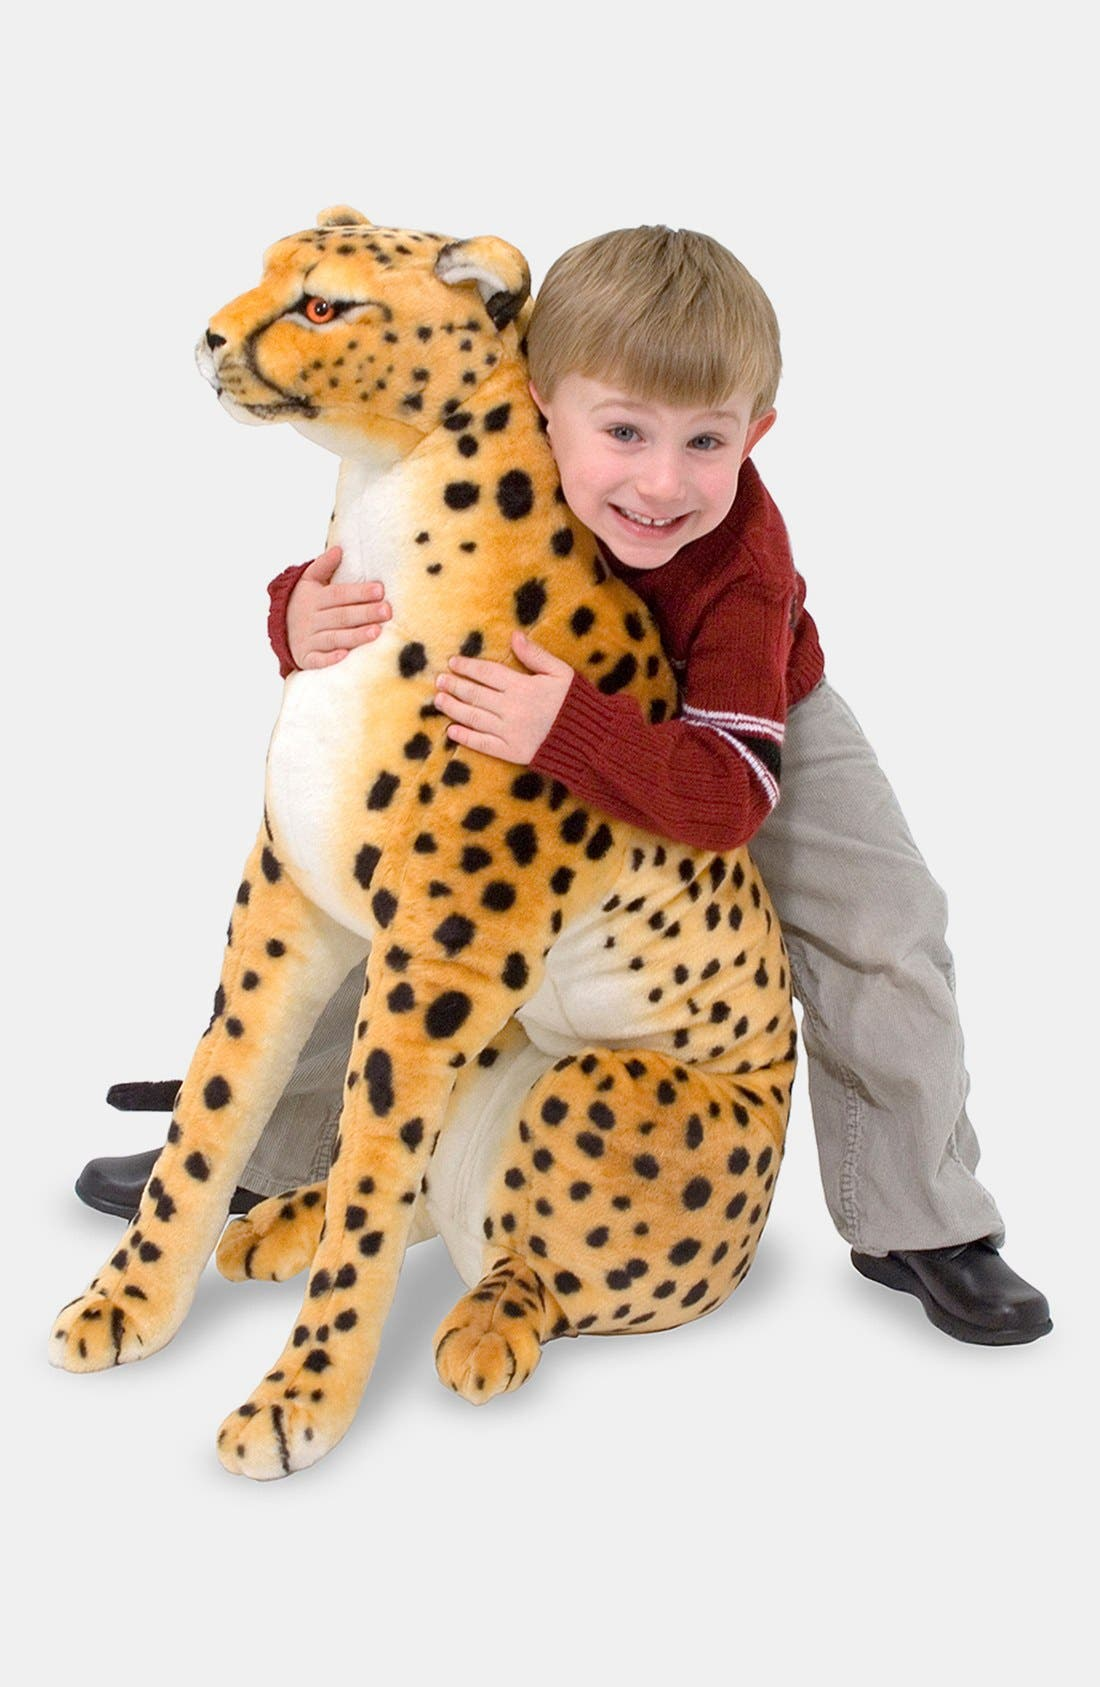 Plush Cheetah Stuffed Animal,                             Main thumbnail 1, color,                             TAN MULTI